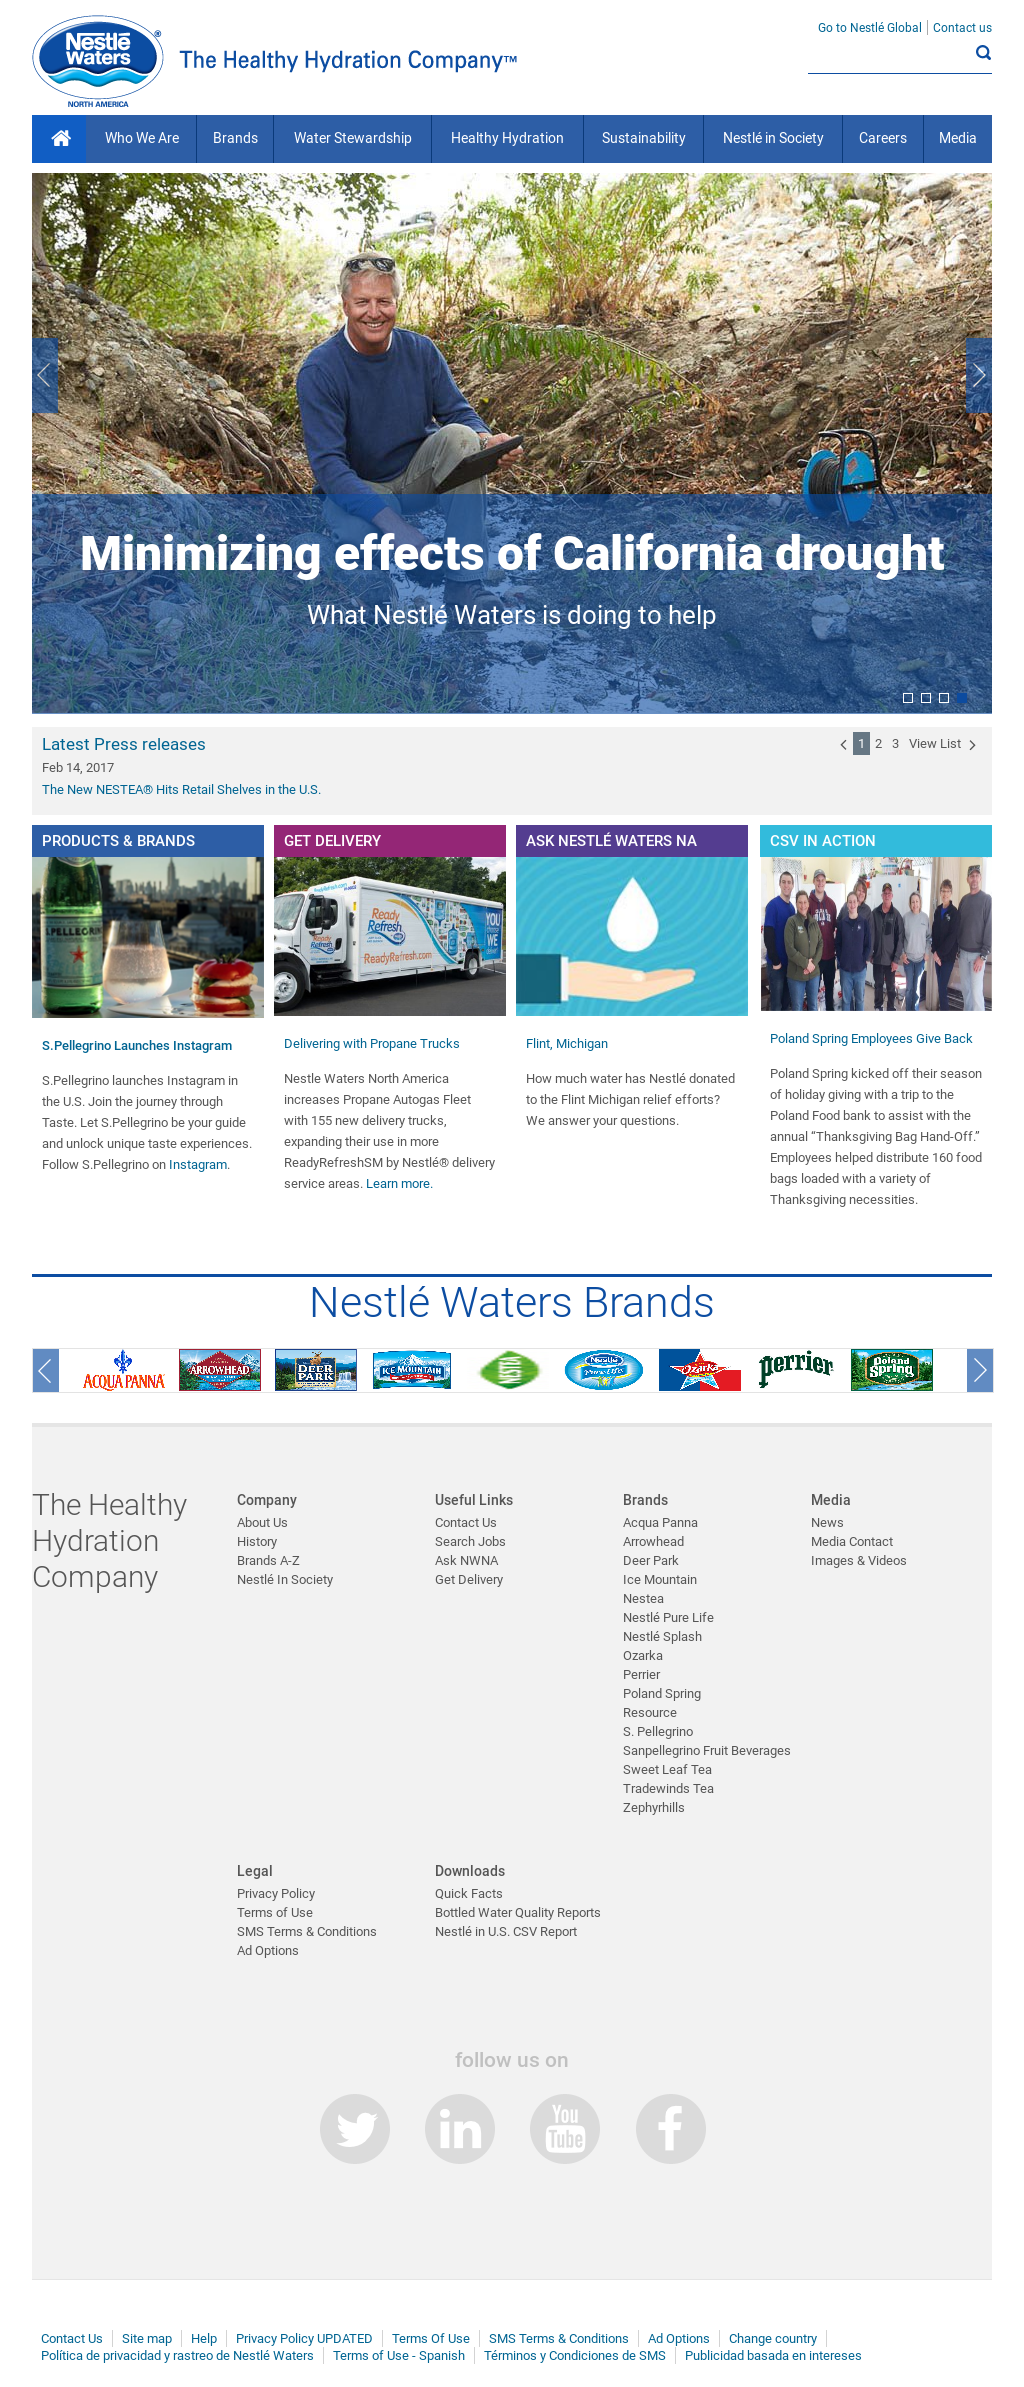 Nestle Waters NA Competitors, Revenue and Employees - Owler Company